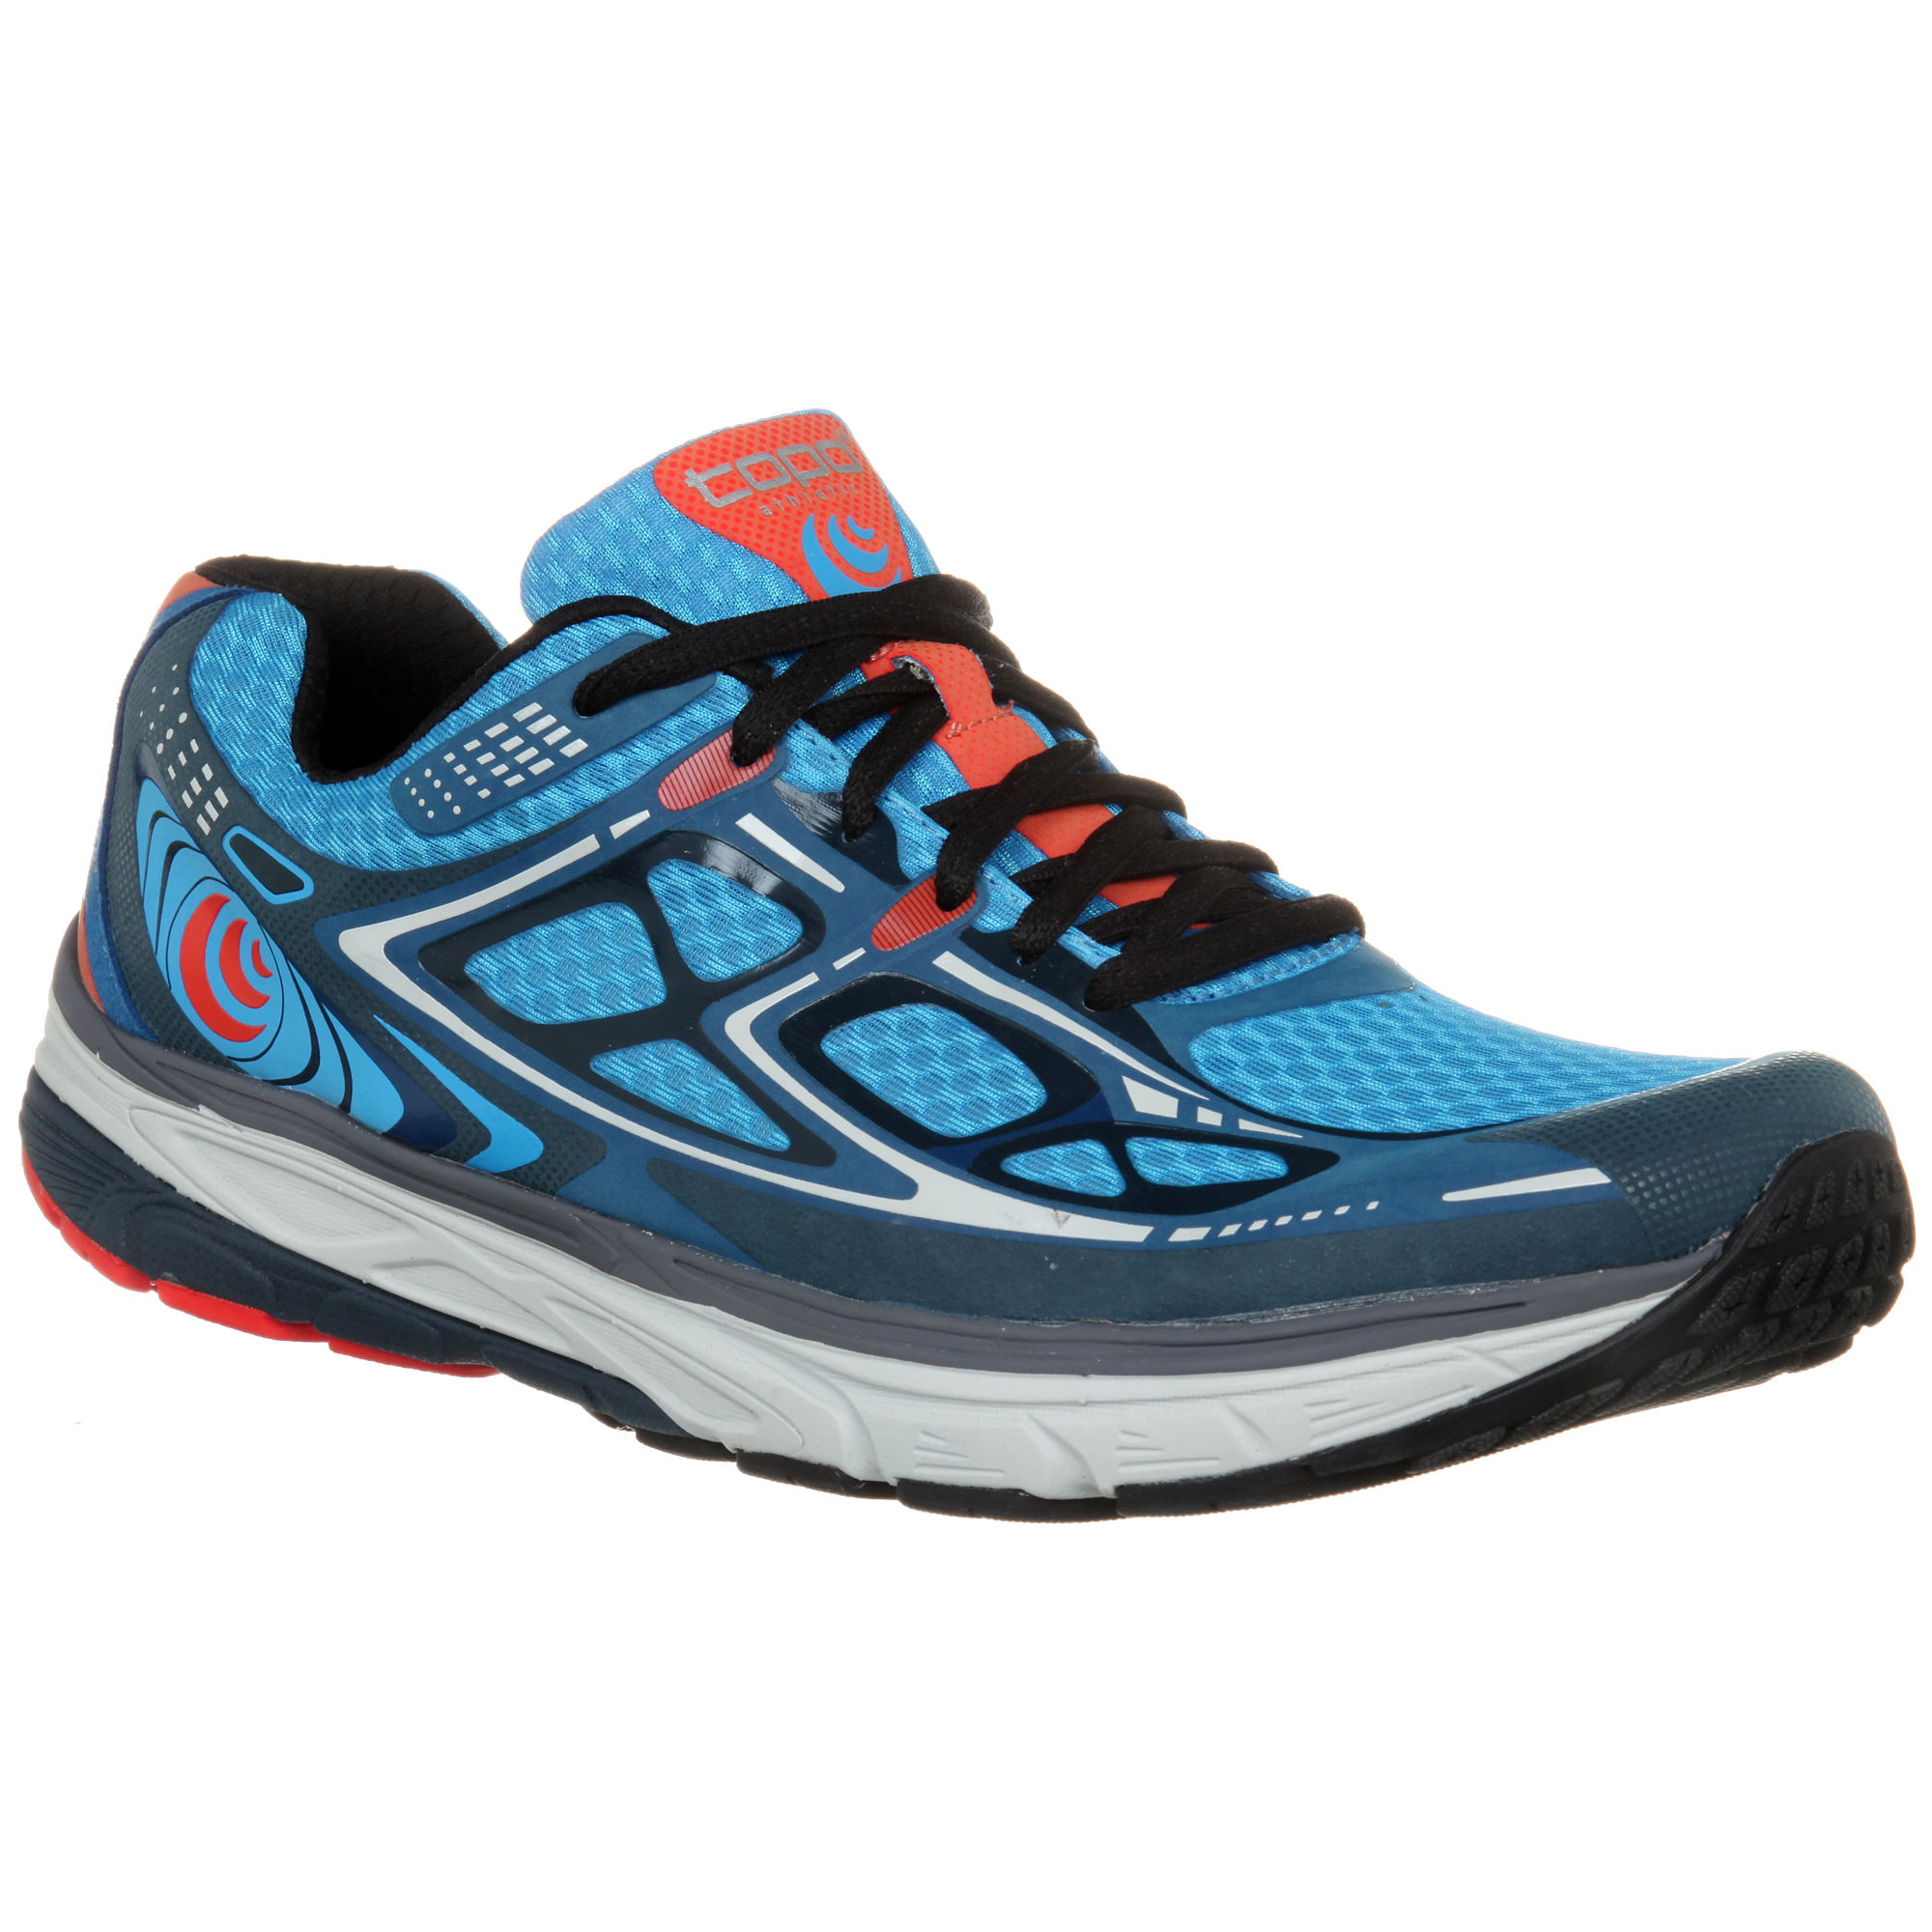 Topo Athletic Magnifly Road Running Shoes